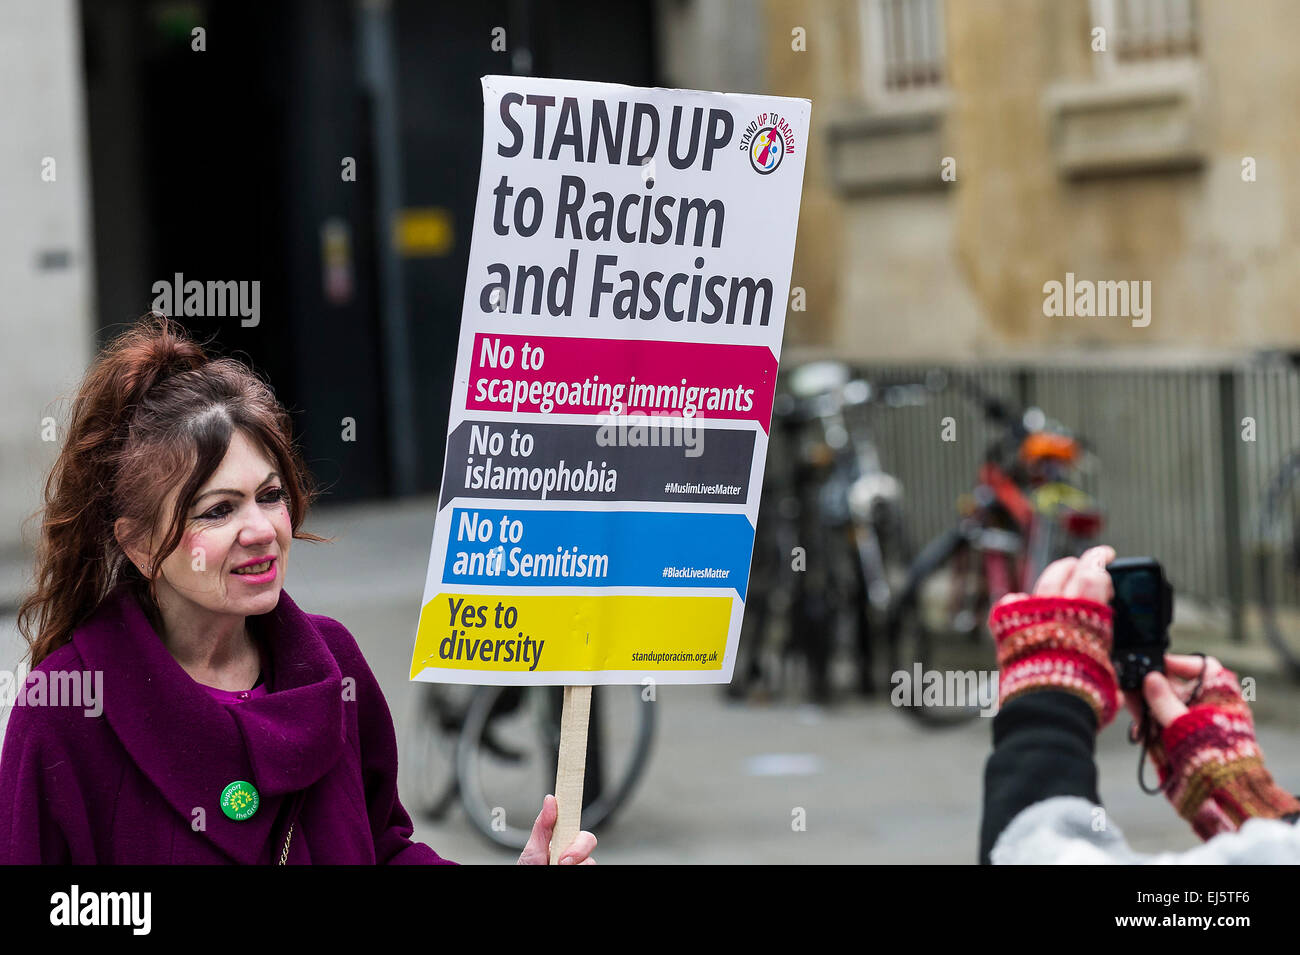 A national demonstration against racism and fascism organised by Stand Up To Racism. - Stock Image